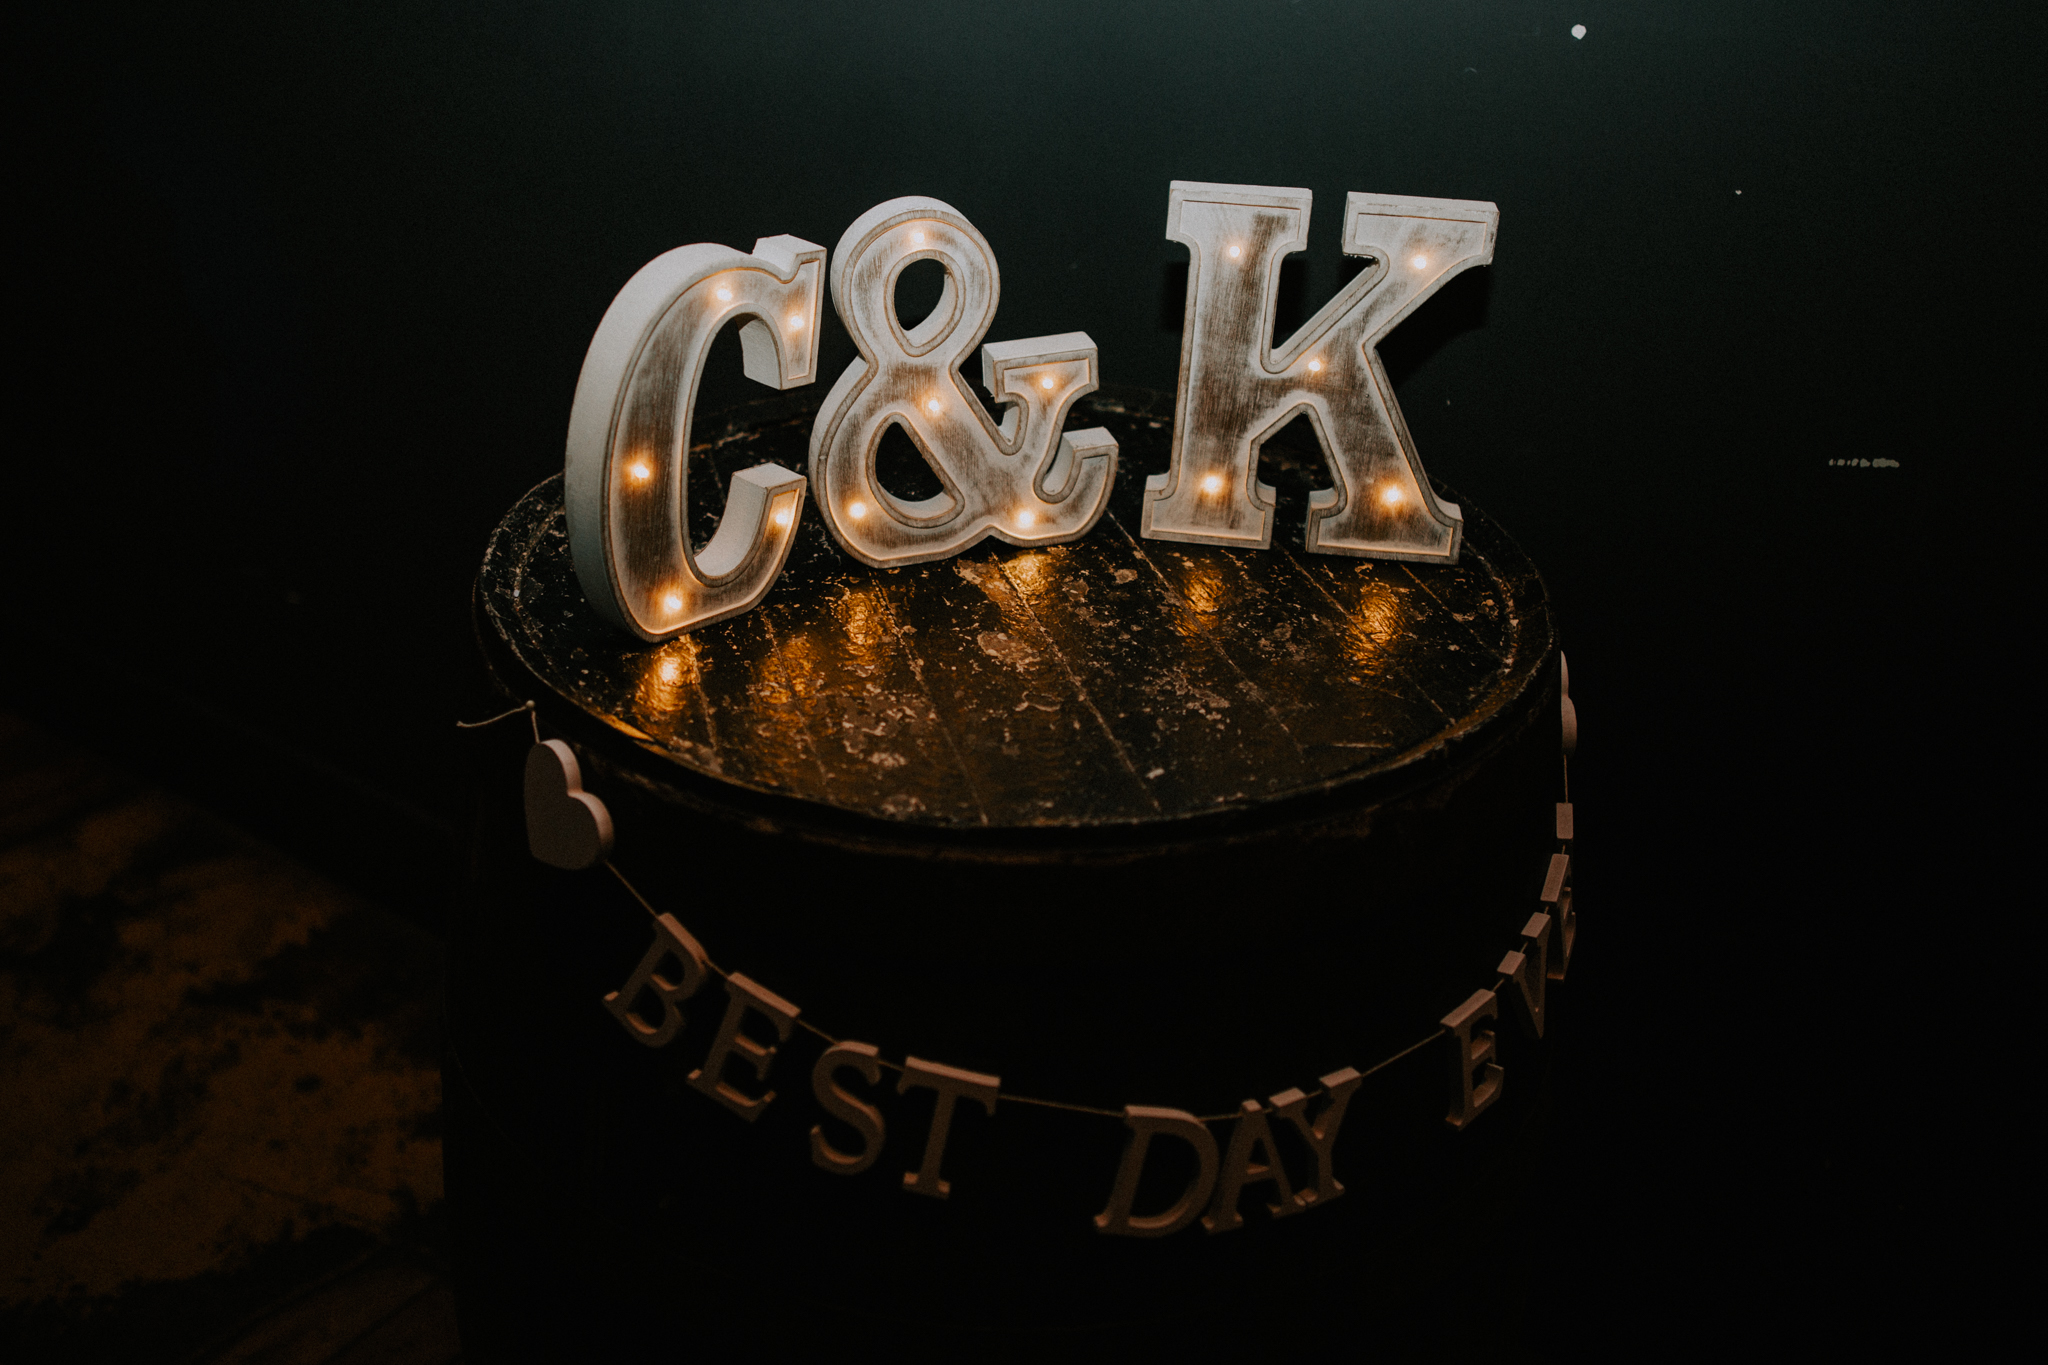 The big letters of the couple's names